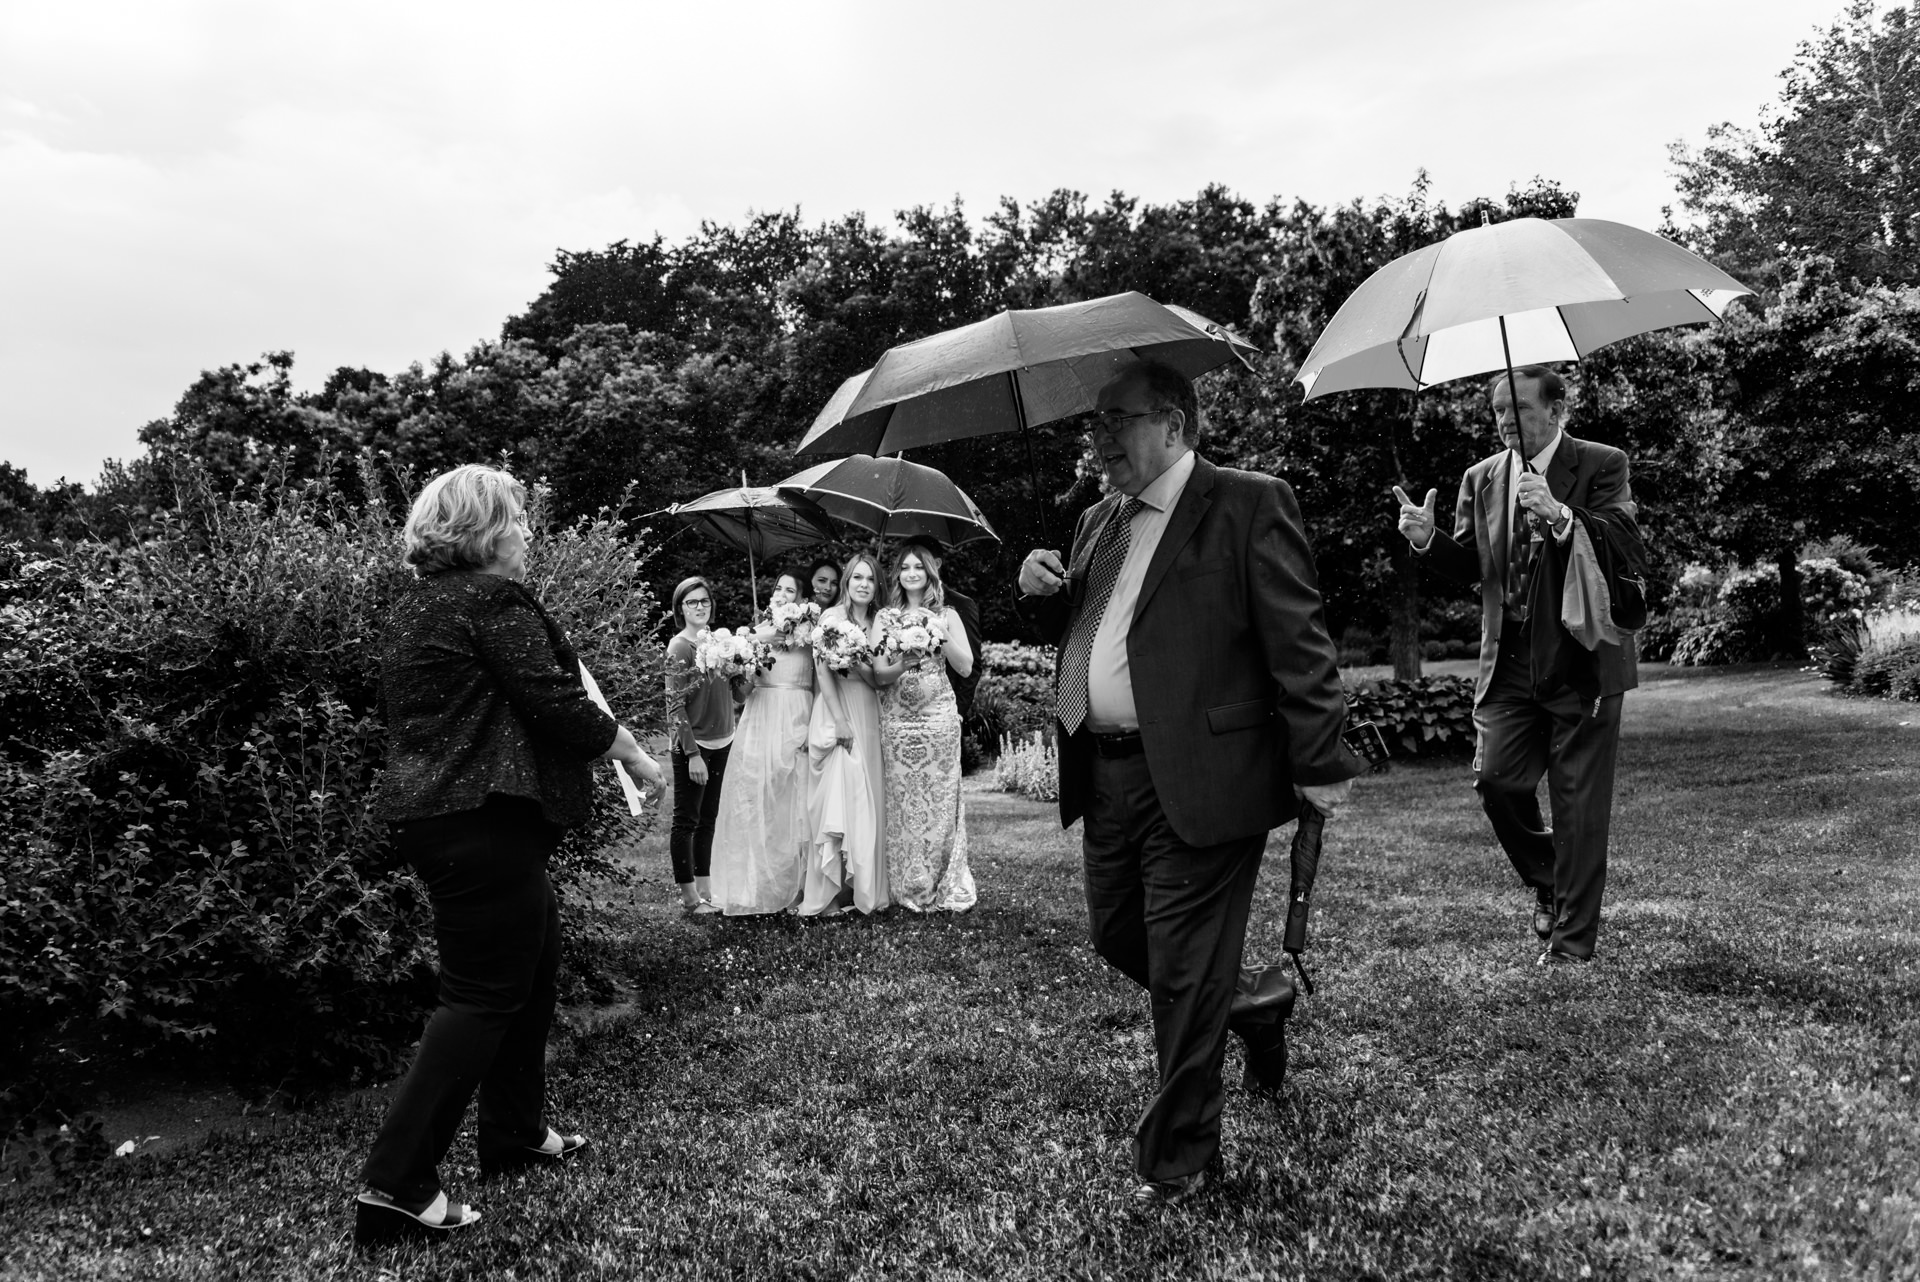 Waiting for the rainy wedding to begin - Auberge des Gallants, Quebec